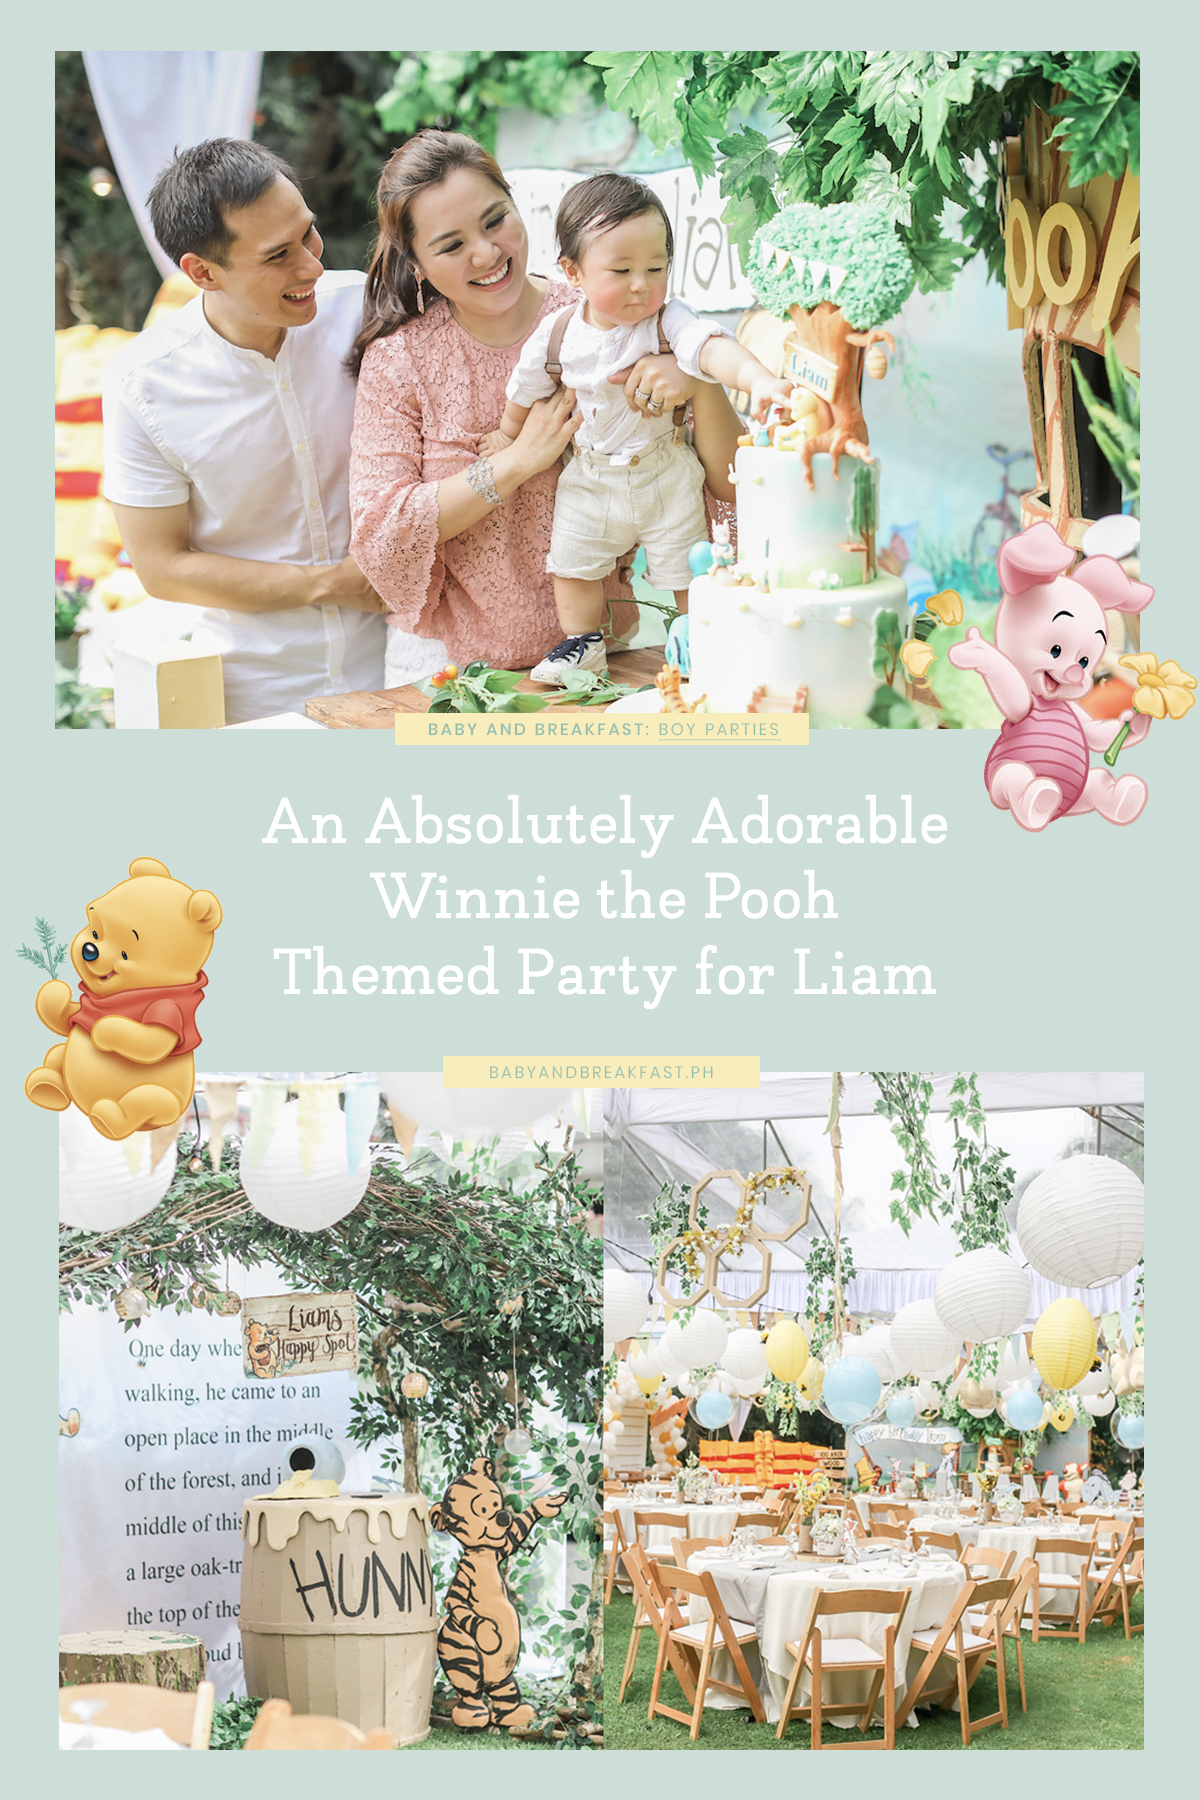 Baby and Breakfast: Boy Parties An Adorable Winnie the Pooh Themed Party for Liam